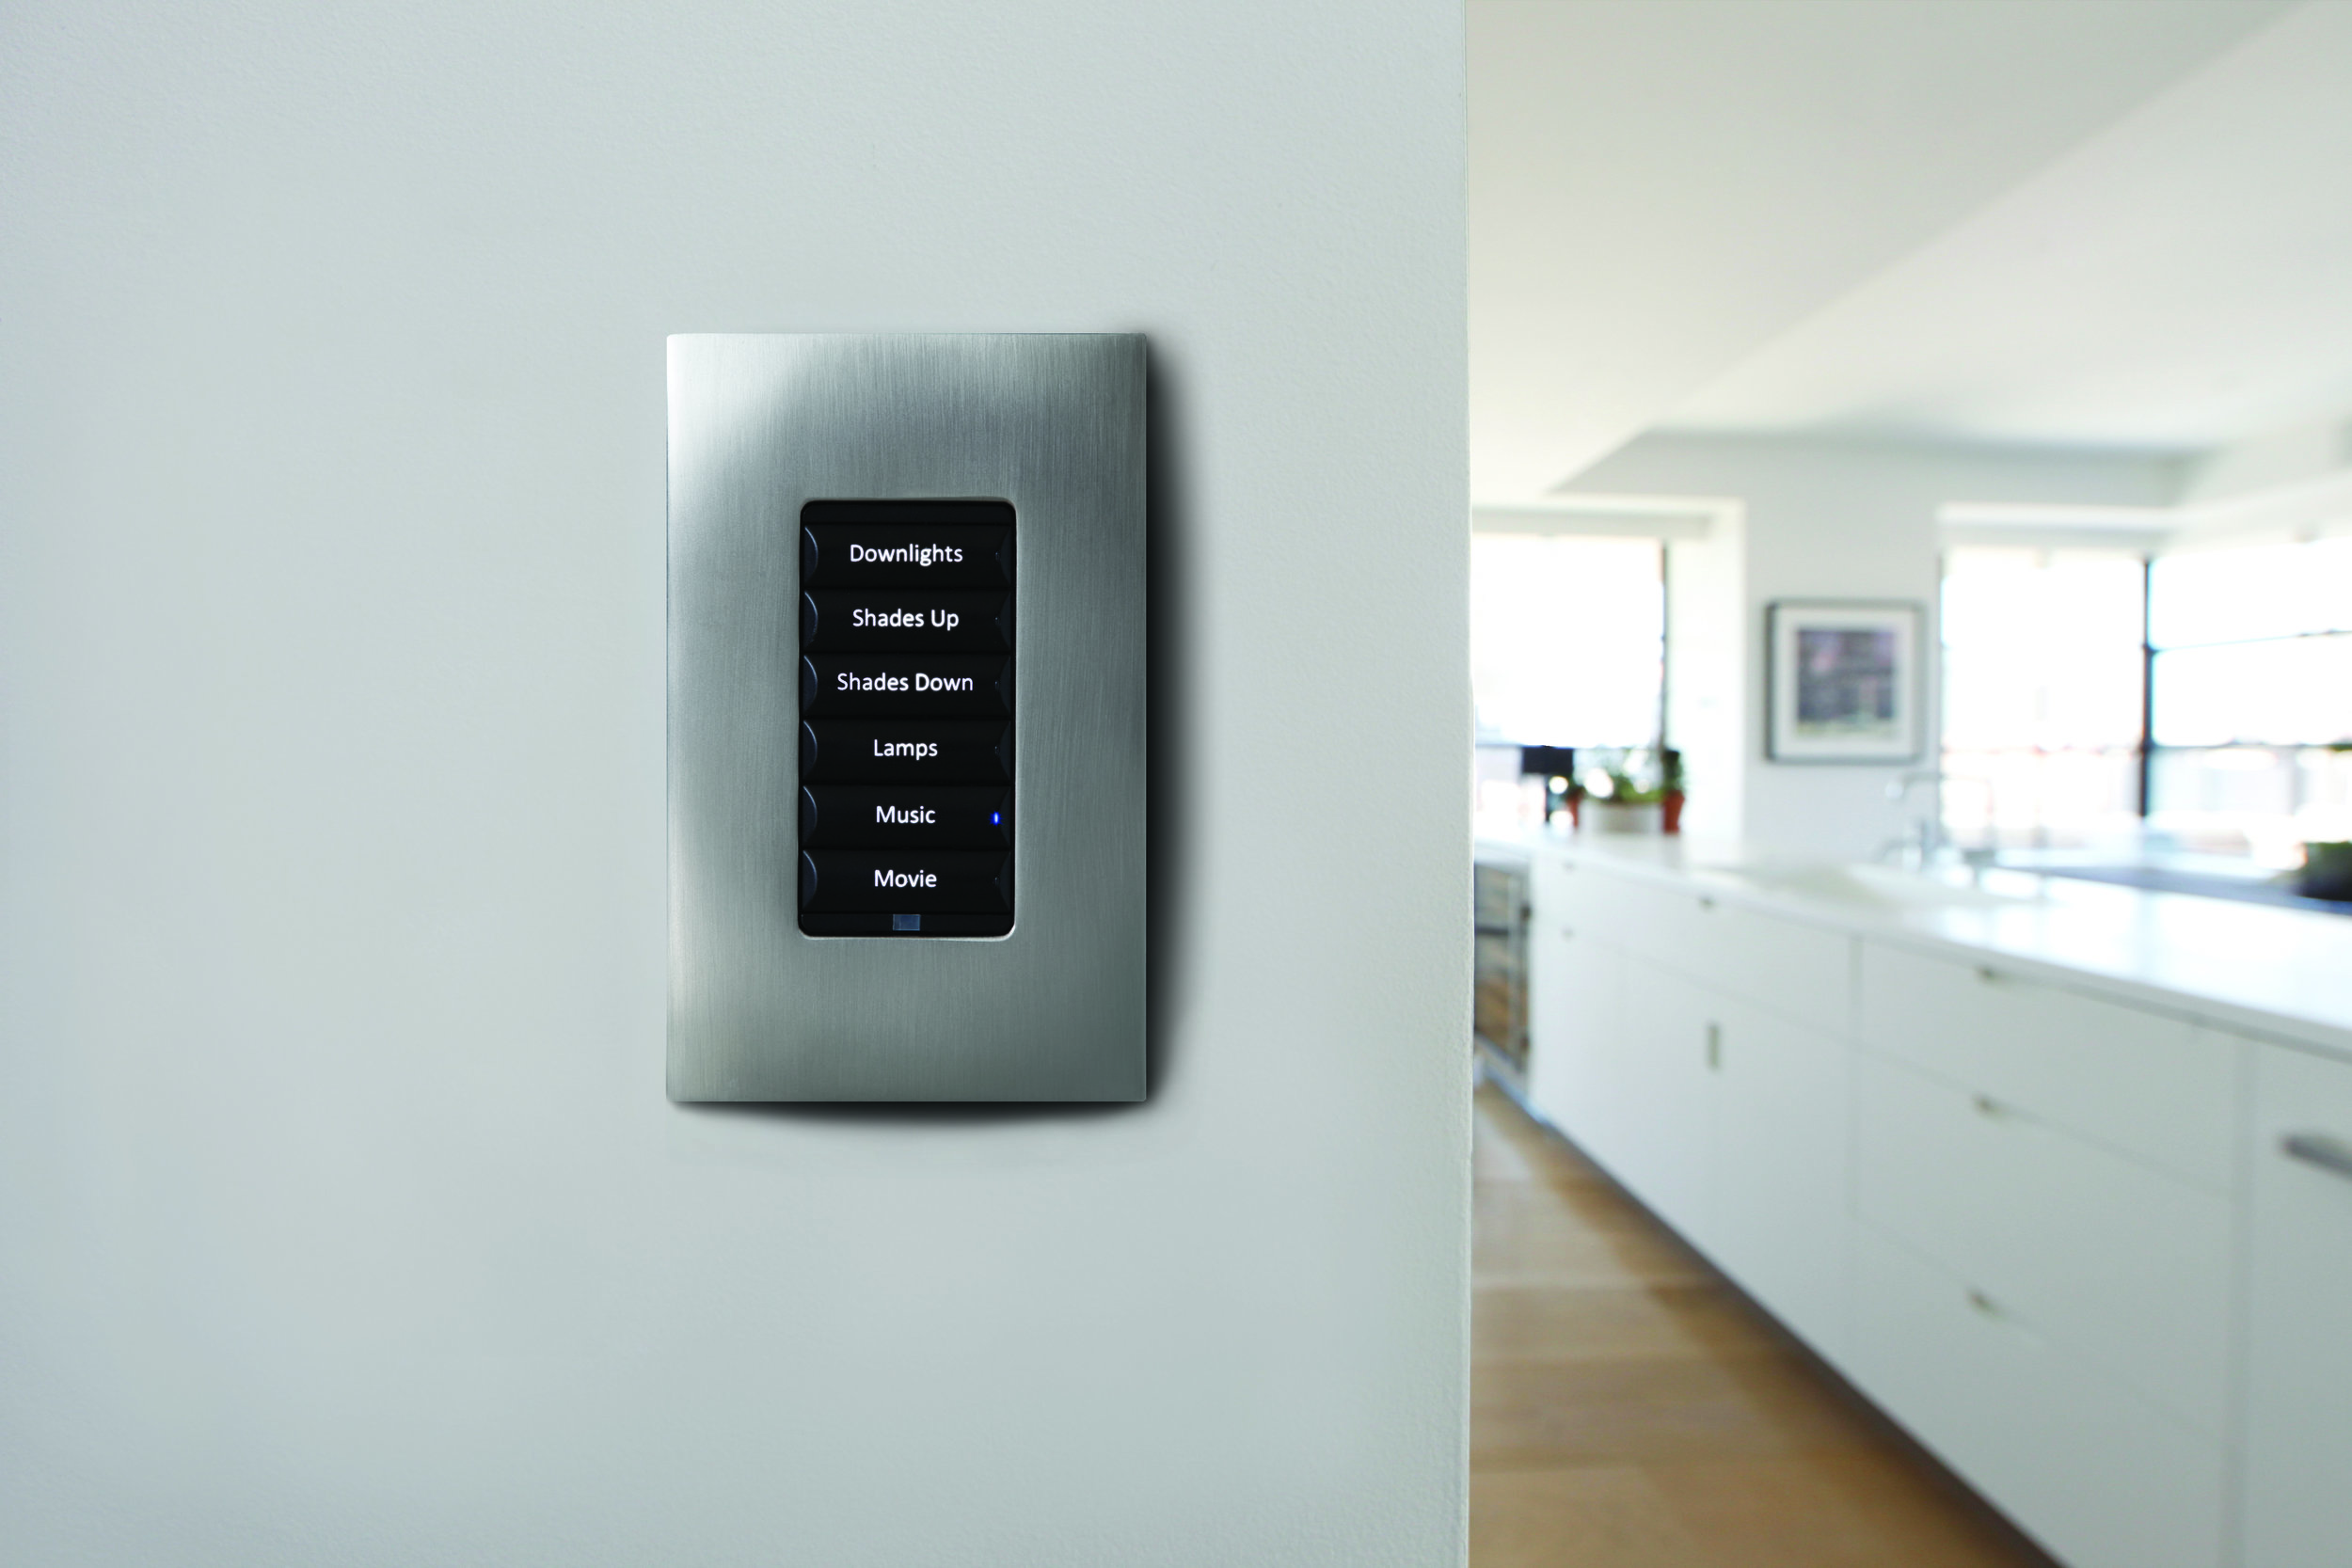 Lighting - Smart Lighting makes it easy to set the mood of your home. One button can turn off every light in the home when leaving for the day. Tell Alexa to turn on the cooking scene and the lights adjust to your desired levels. Lighting is most customers' favorite smart home feature.